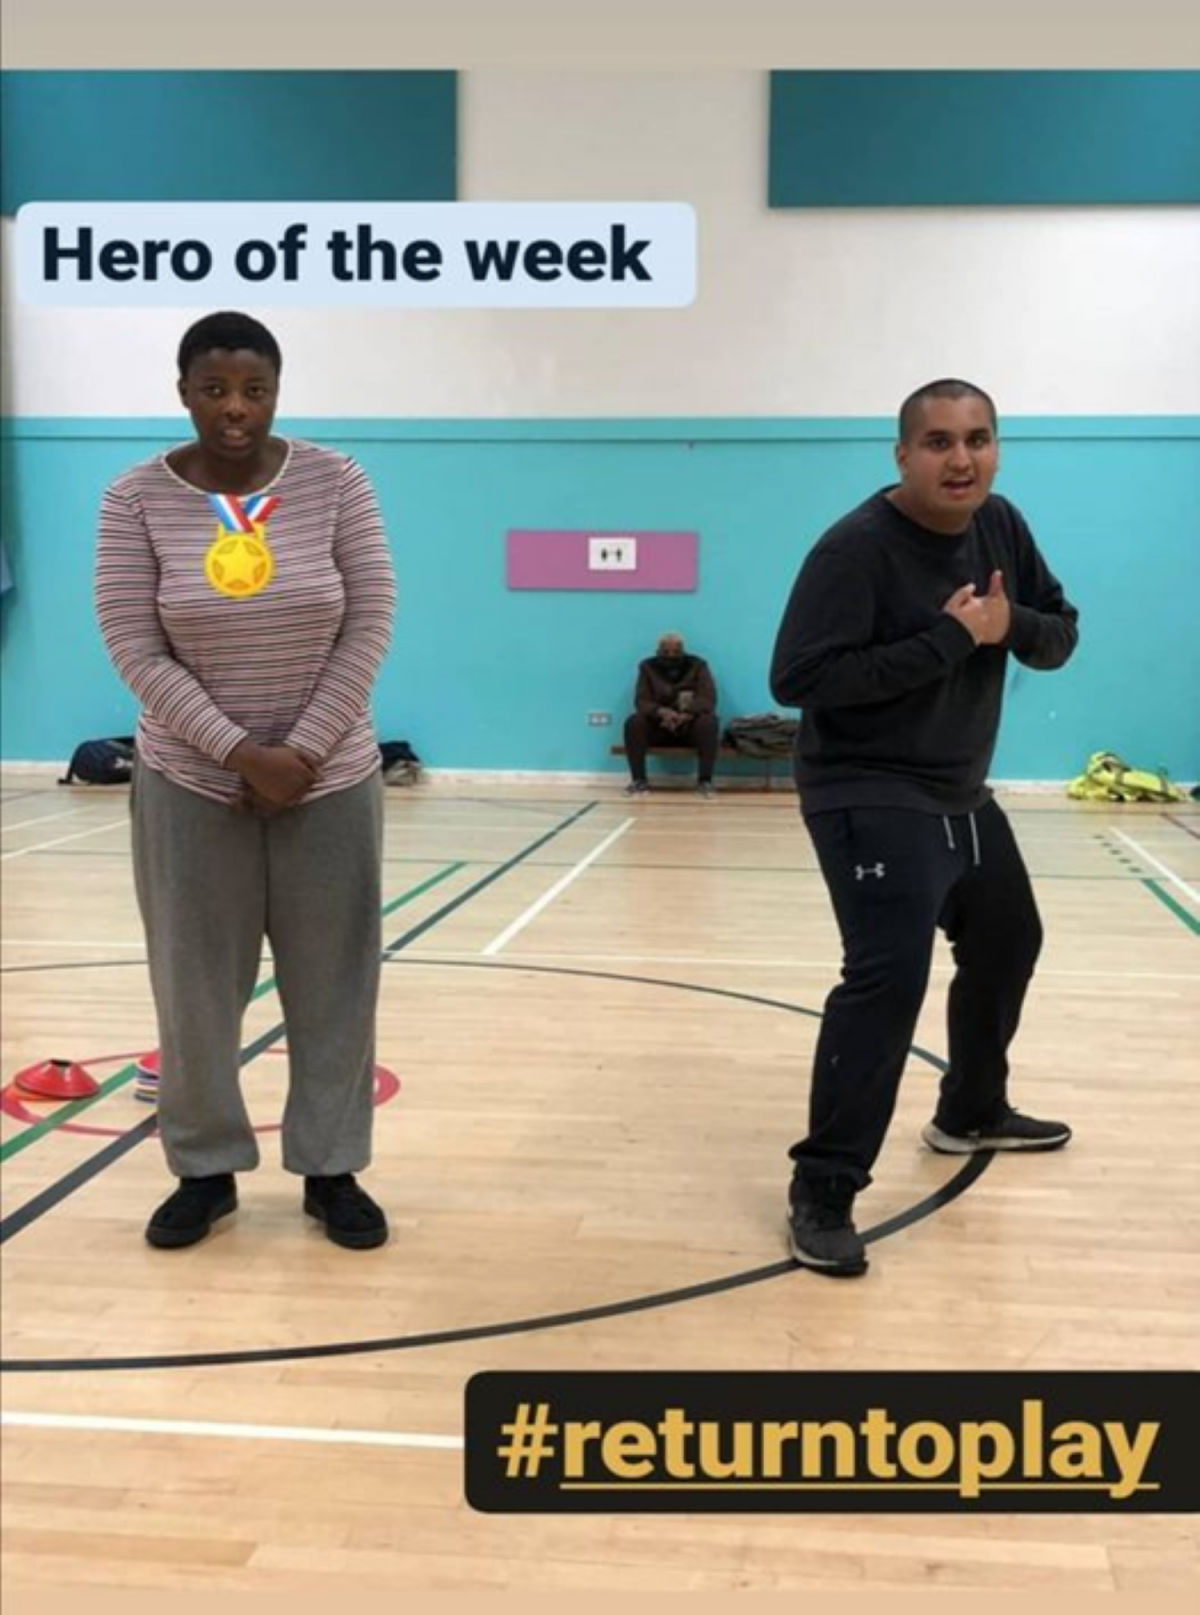 Club Wandsworth Hero of the Week